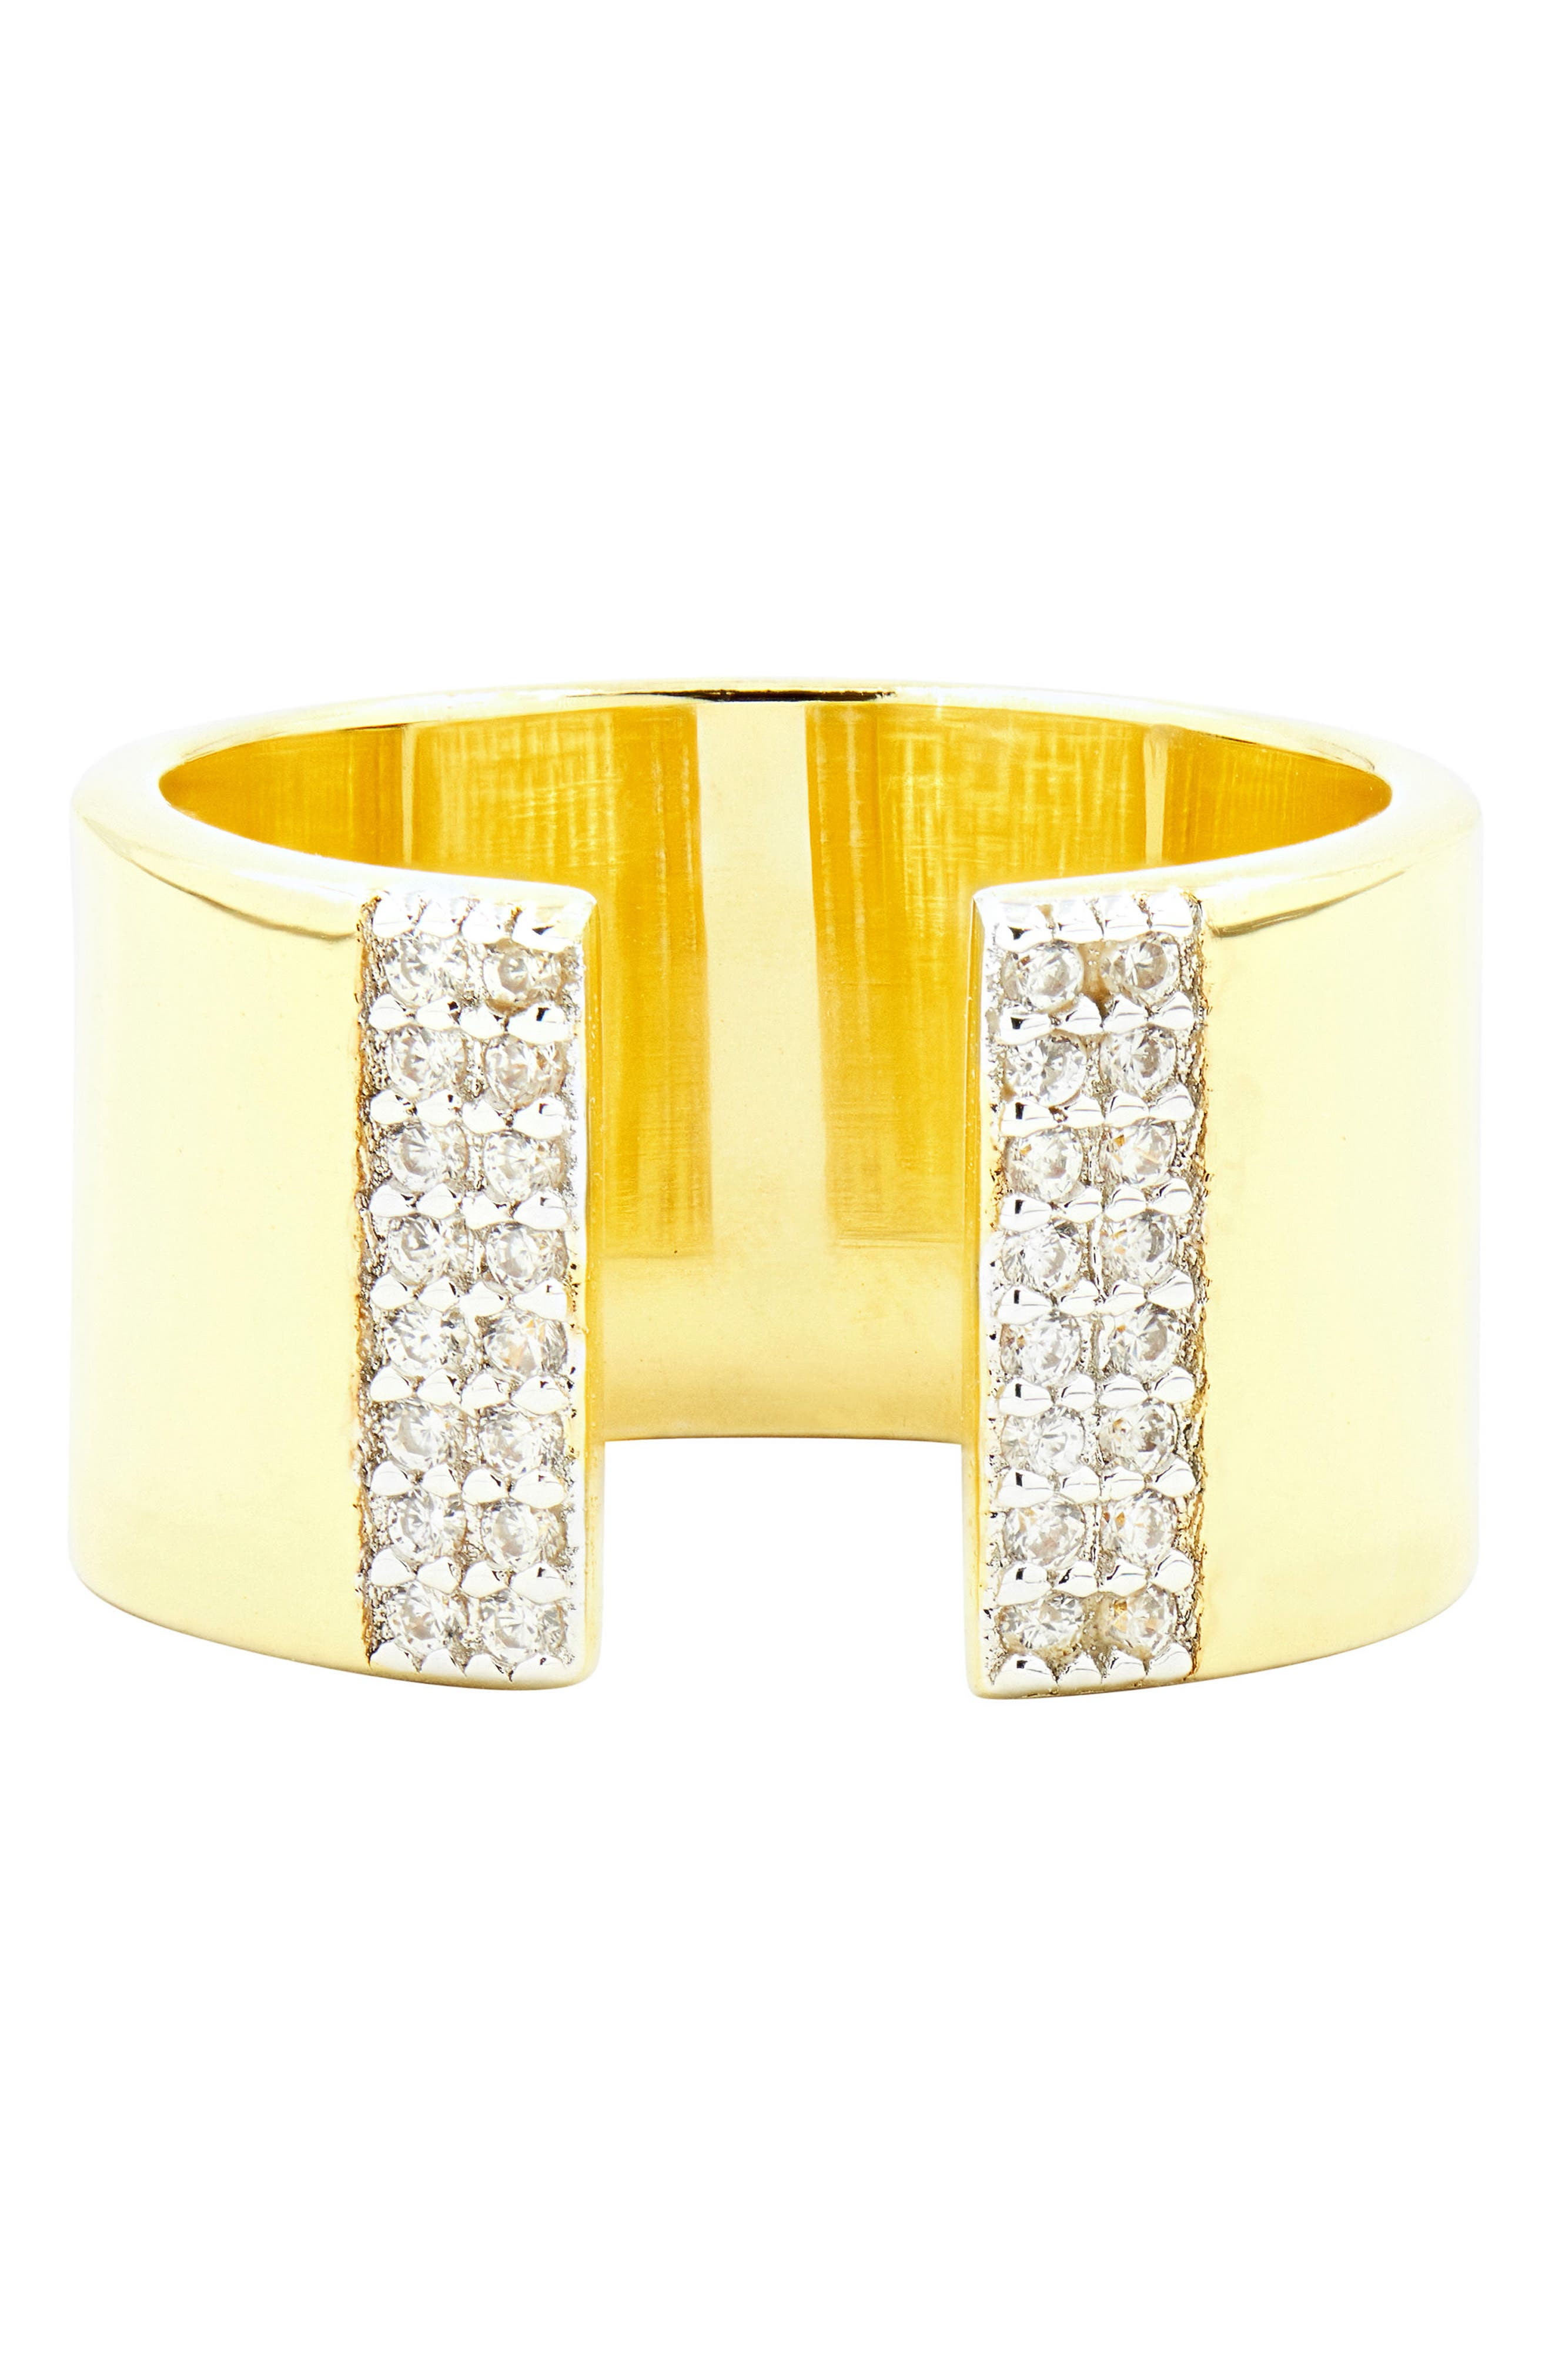 Radiance Cubic Zirconia Ring,                         Main,                         color, Silver/ Gold